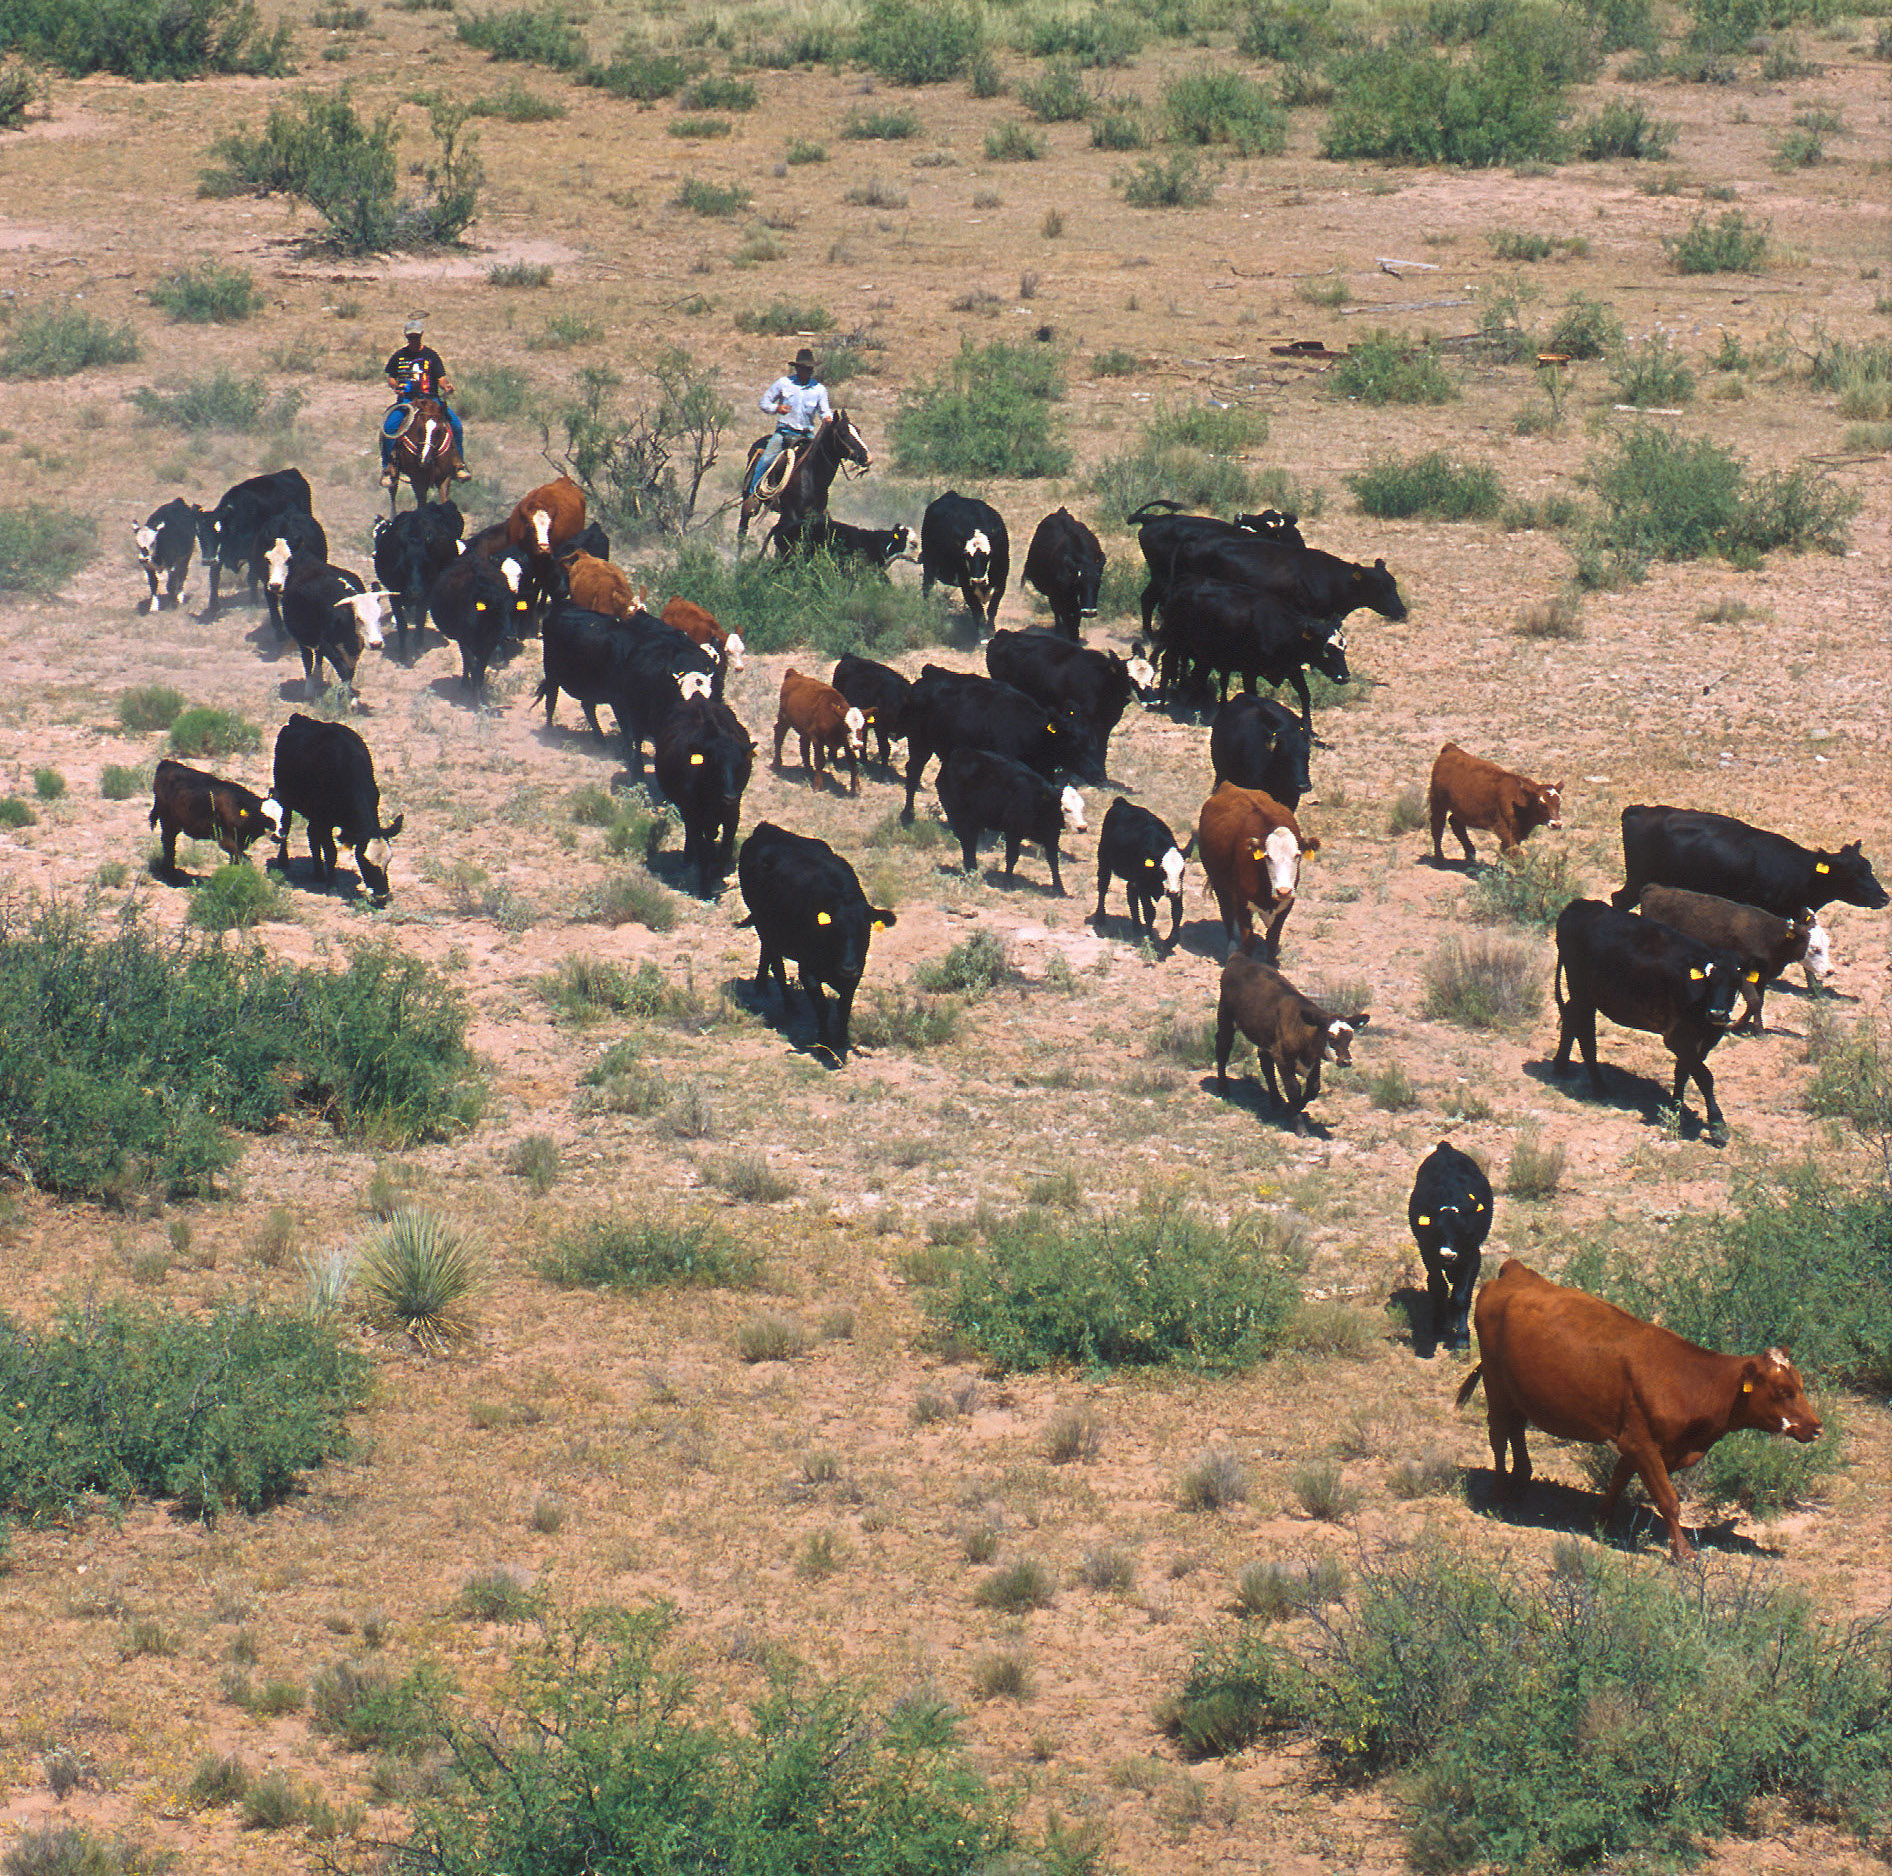 Texas Drought Reduces Cattle Herds Water Supplies Lake